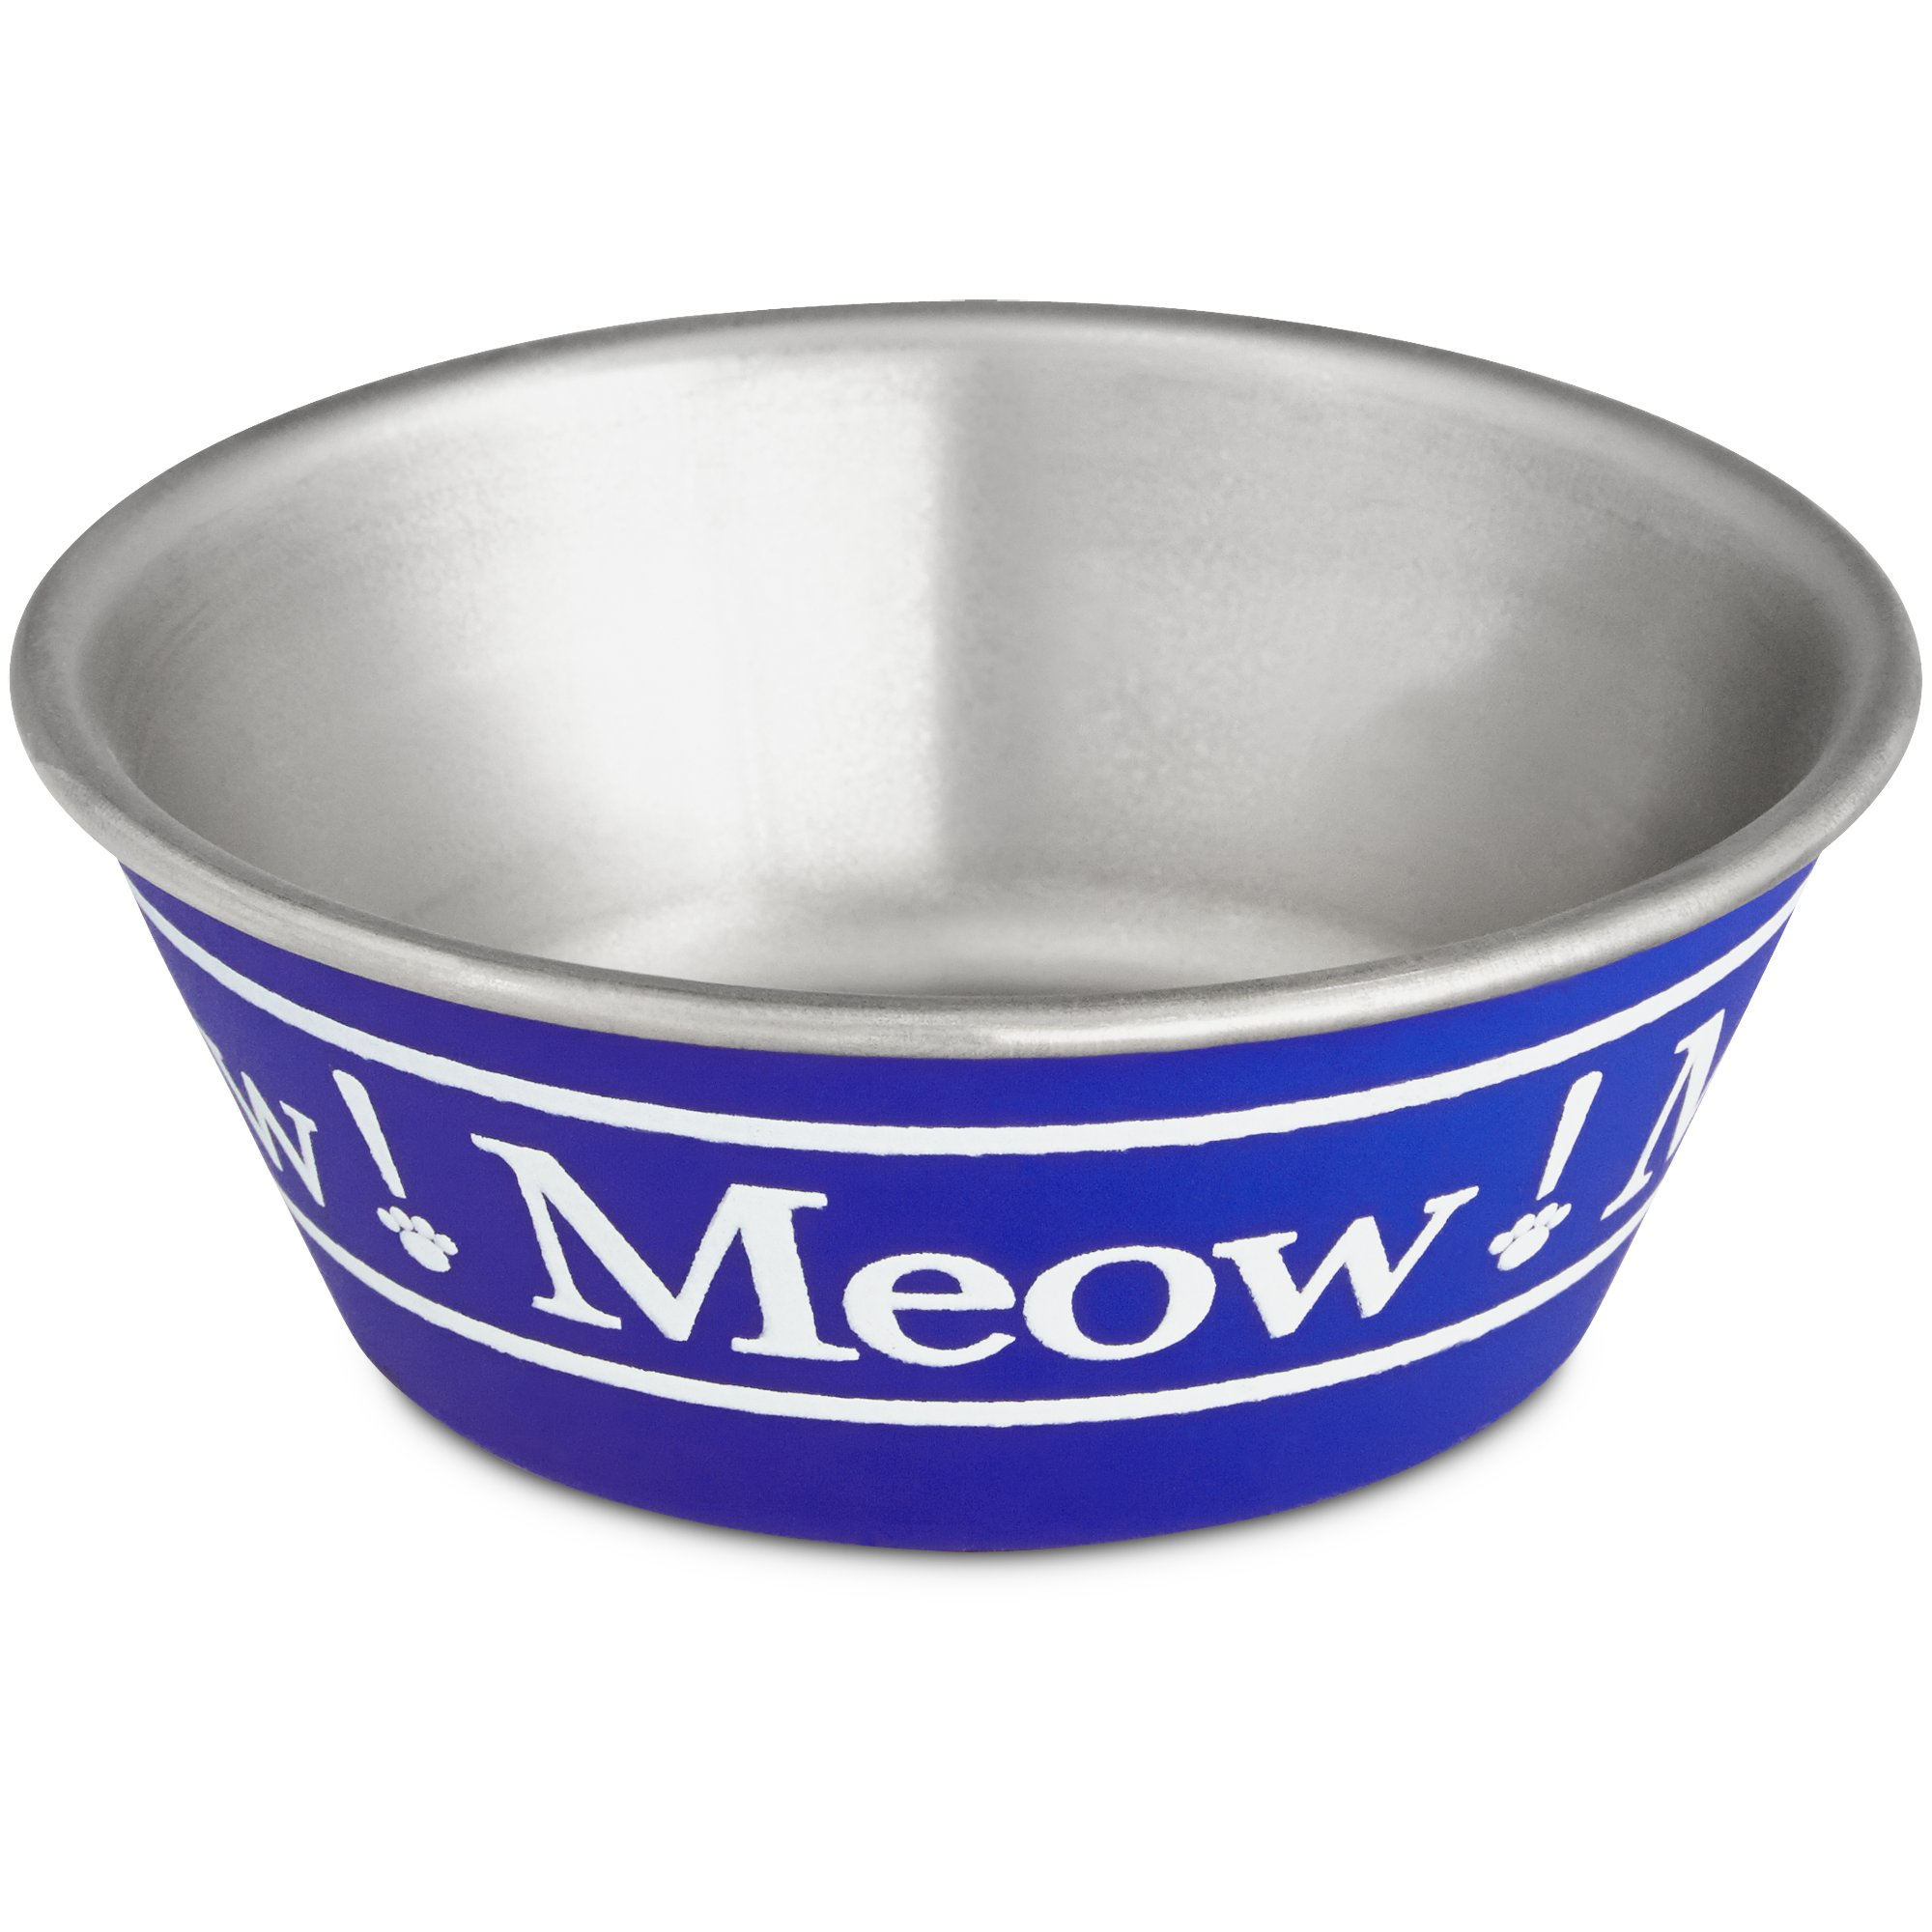 Harmony Blue Meow Stainless Steel Cat Bowl